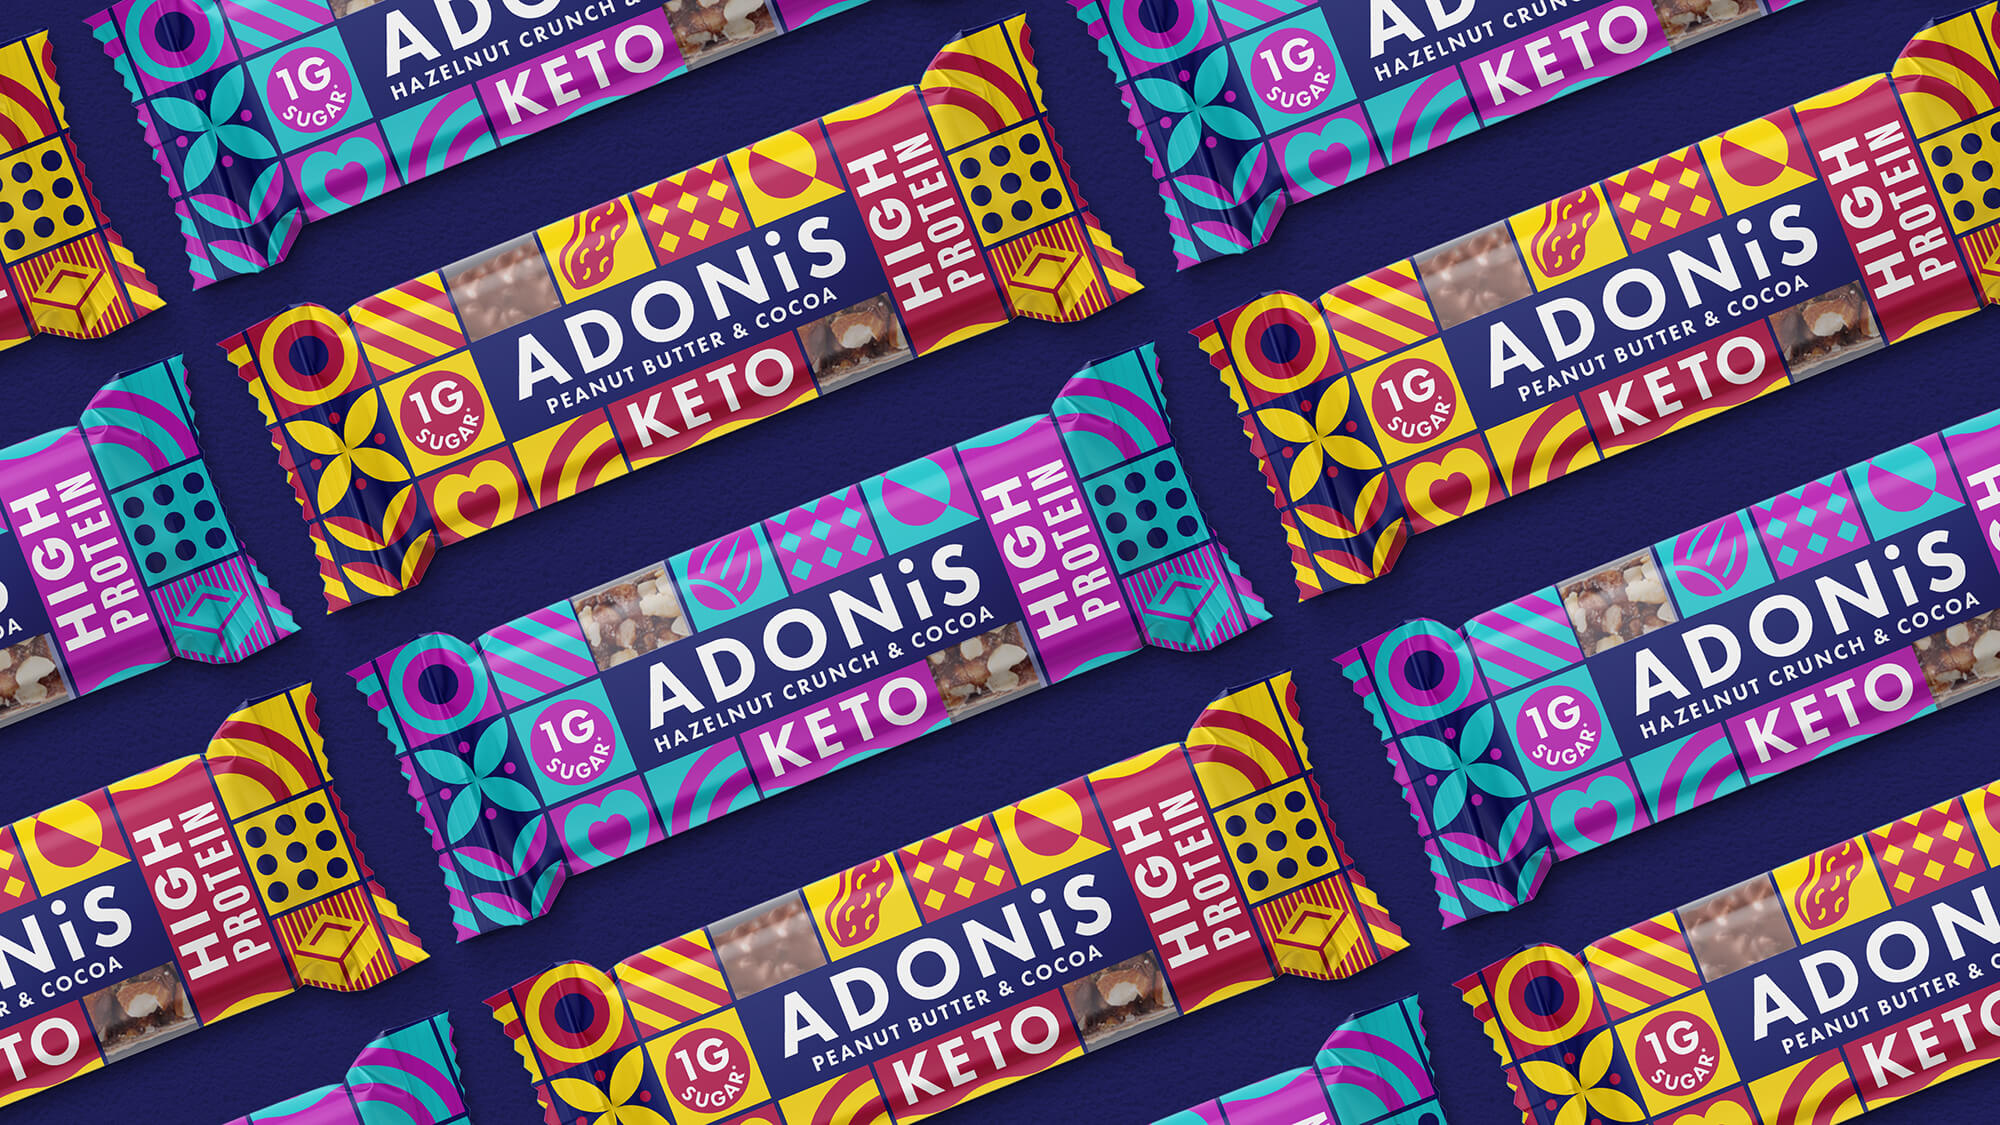 The Space Creative Sparks Desire for Keto Snacking B